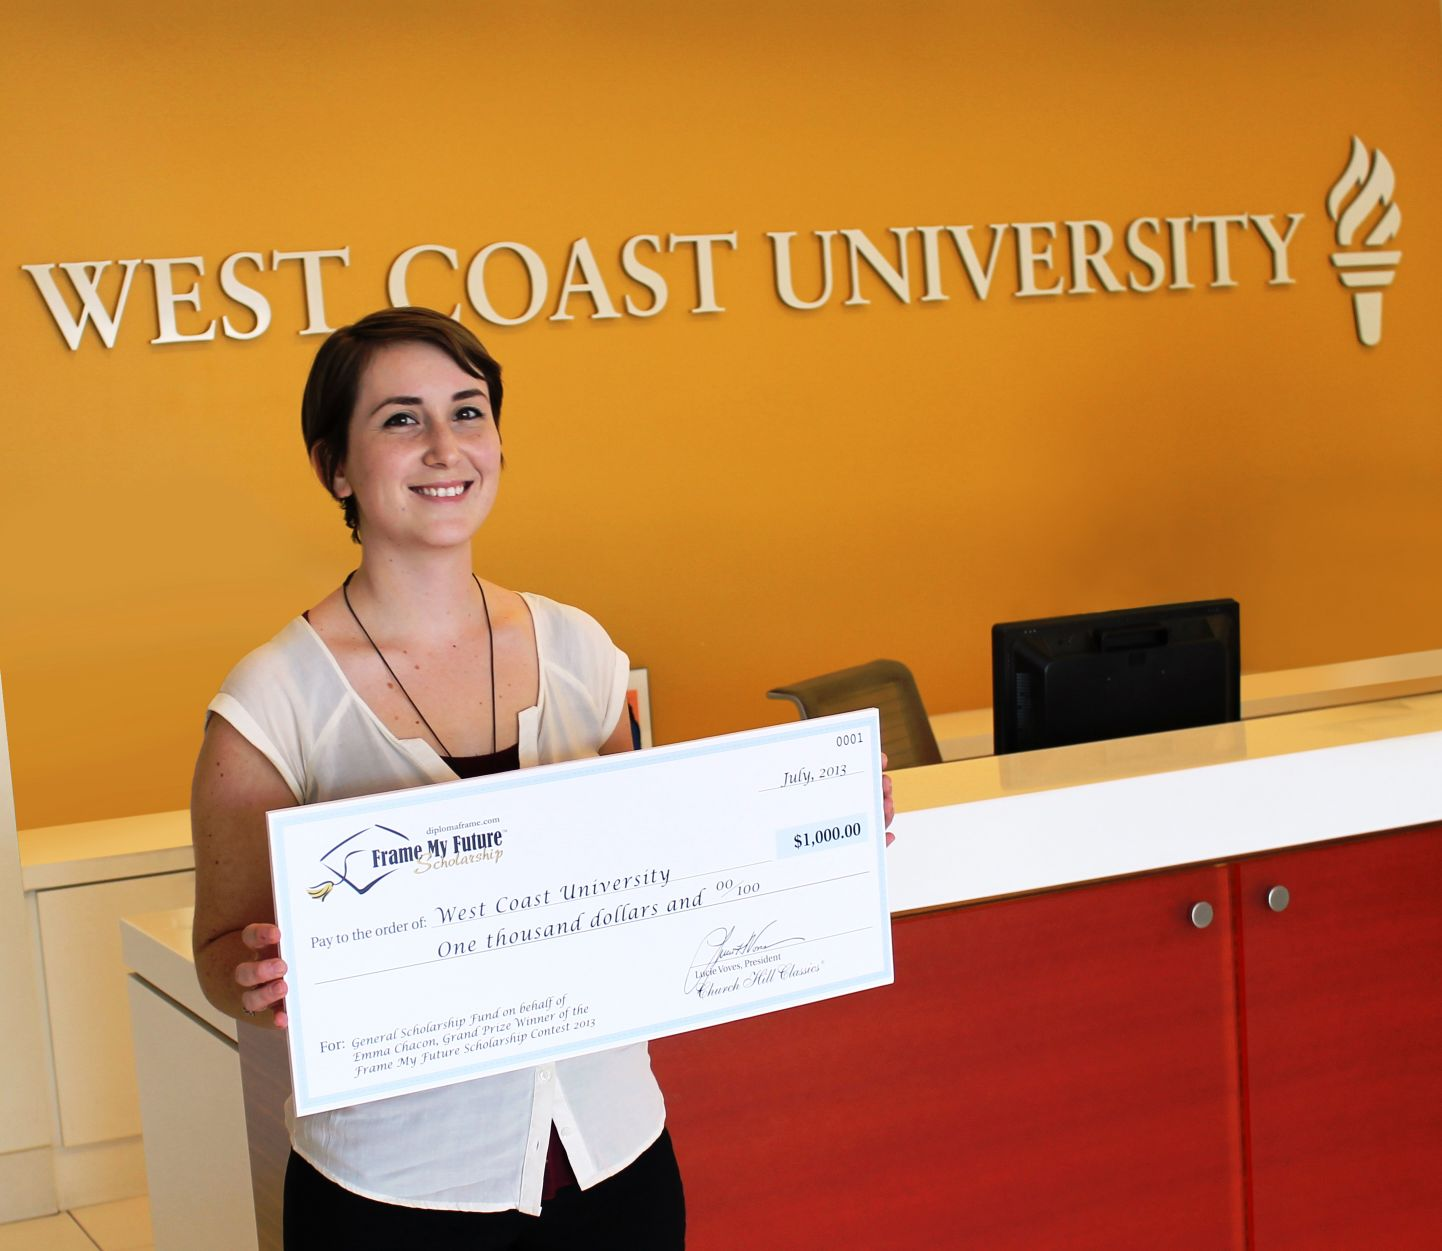 Emma Chacon - Grand Prize Winner presenting the donation check to West Coast University